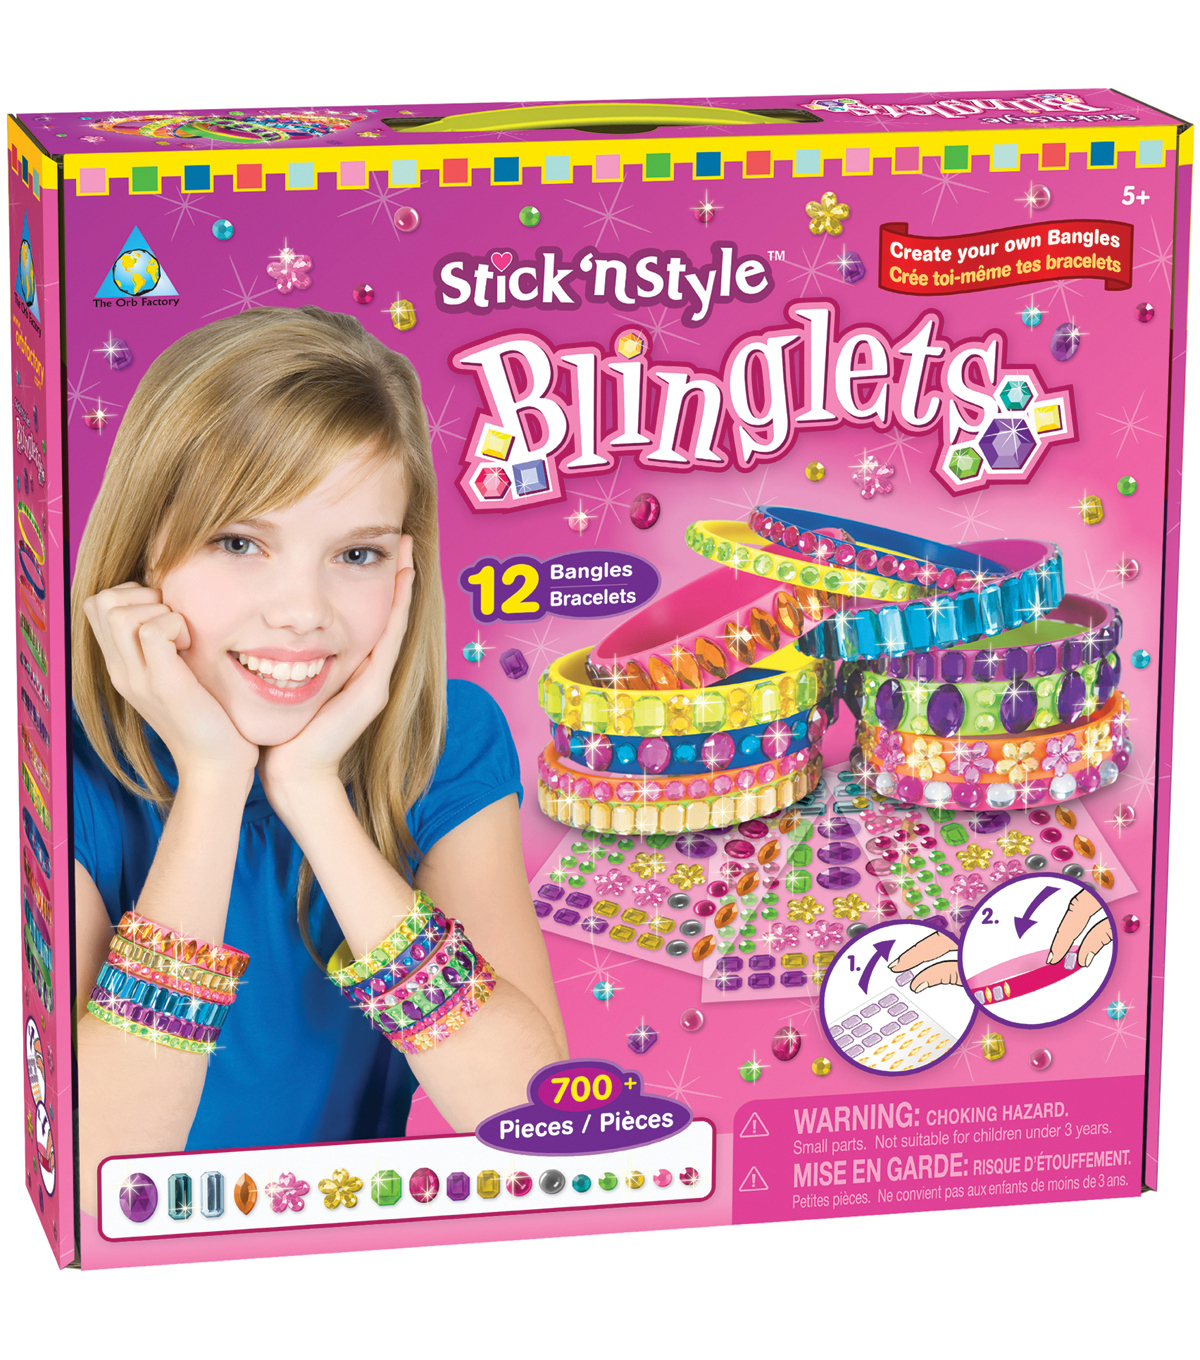 Stick 'n Style Kit-Blinglets